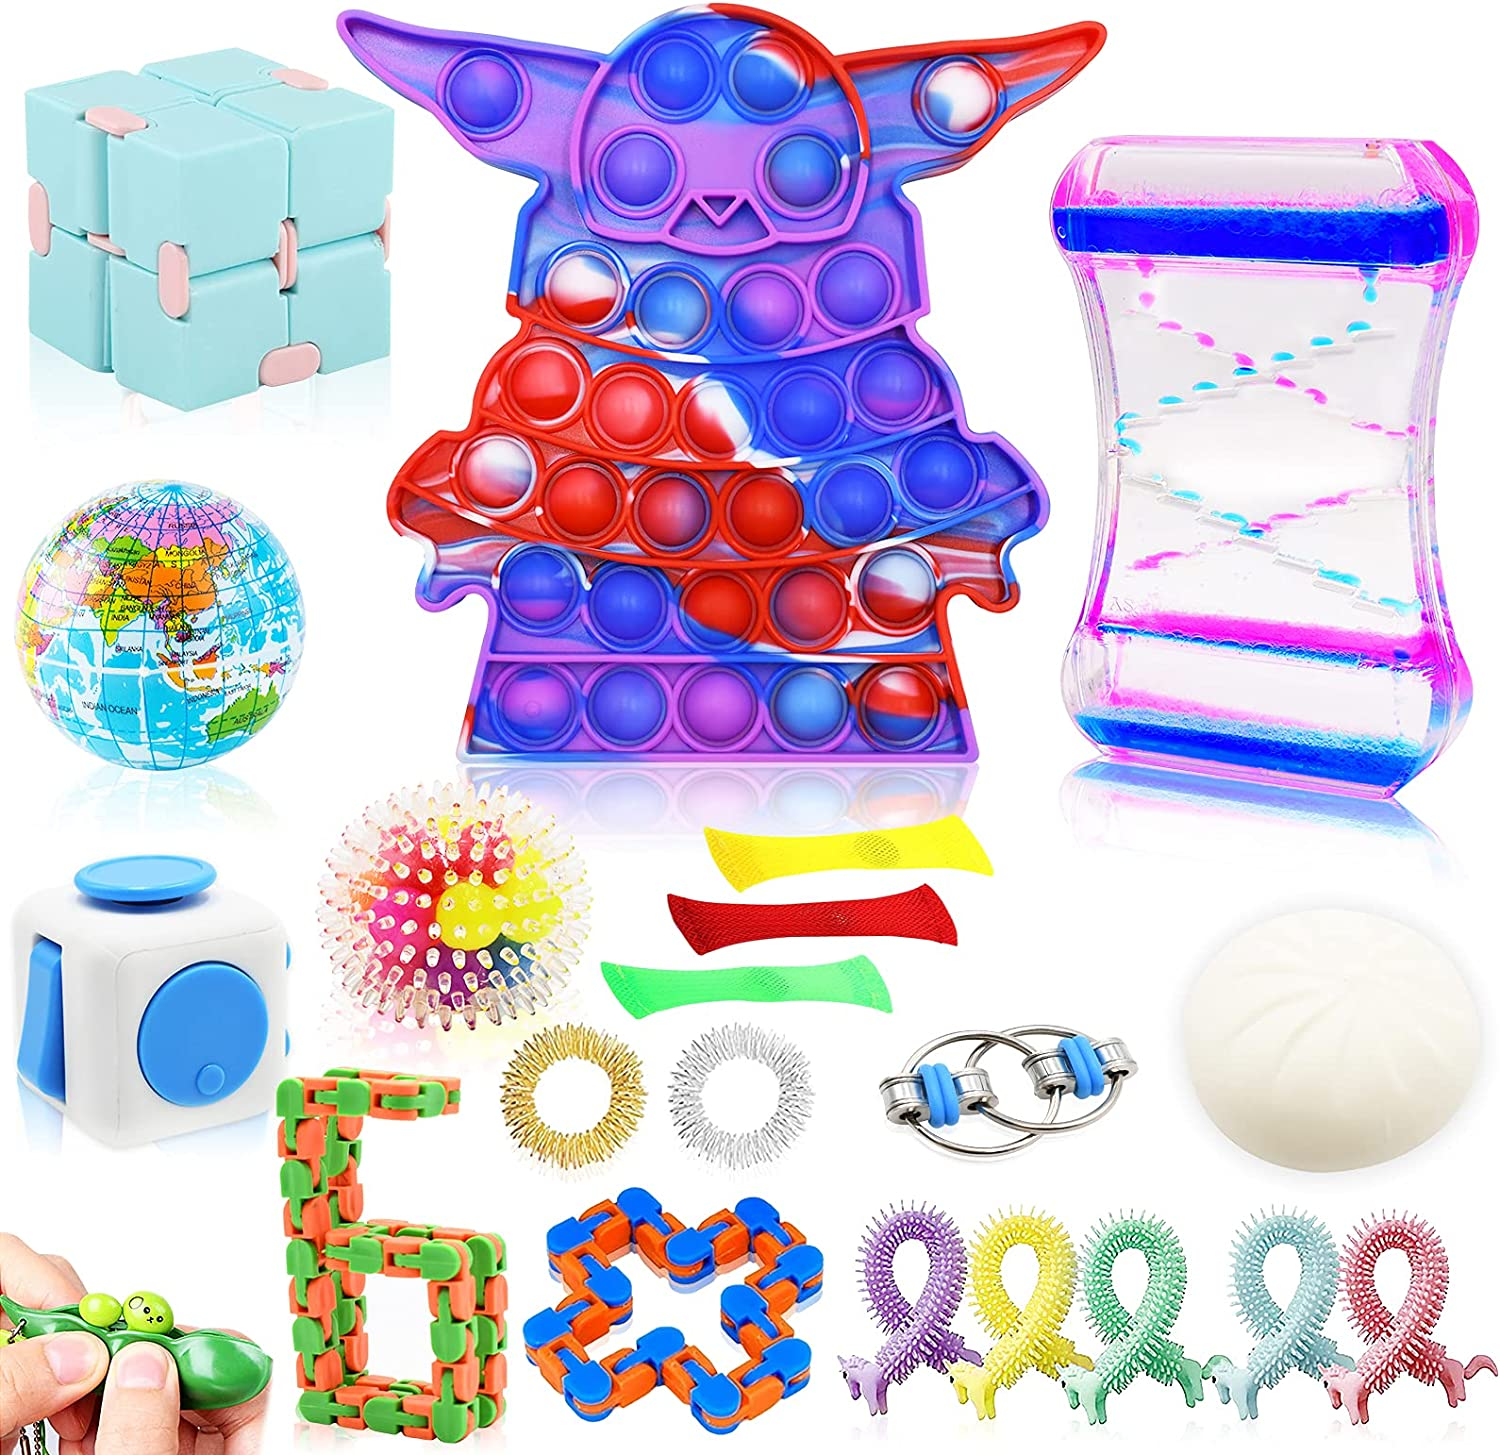 EPPO 21Pcs Limited price Fidget Toy Set Pop Stress Relief and Anxiety Seattle Mall Bubble